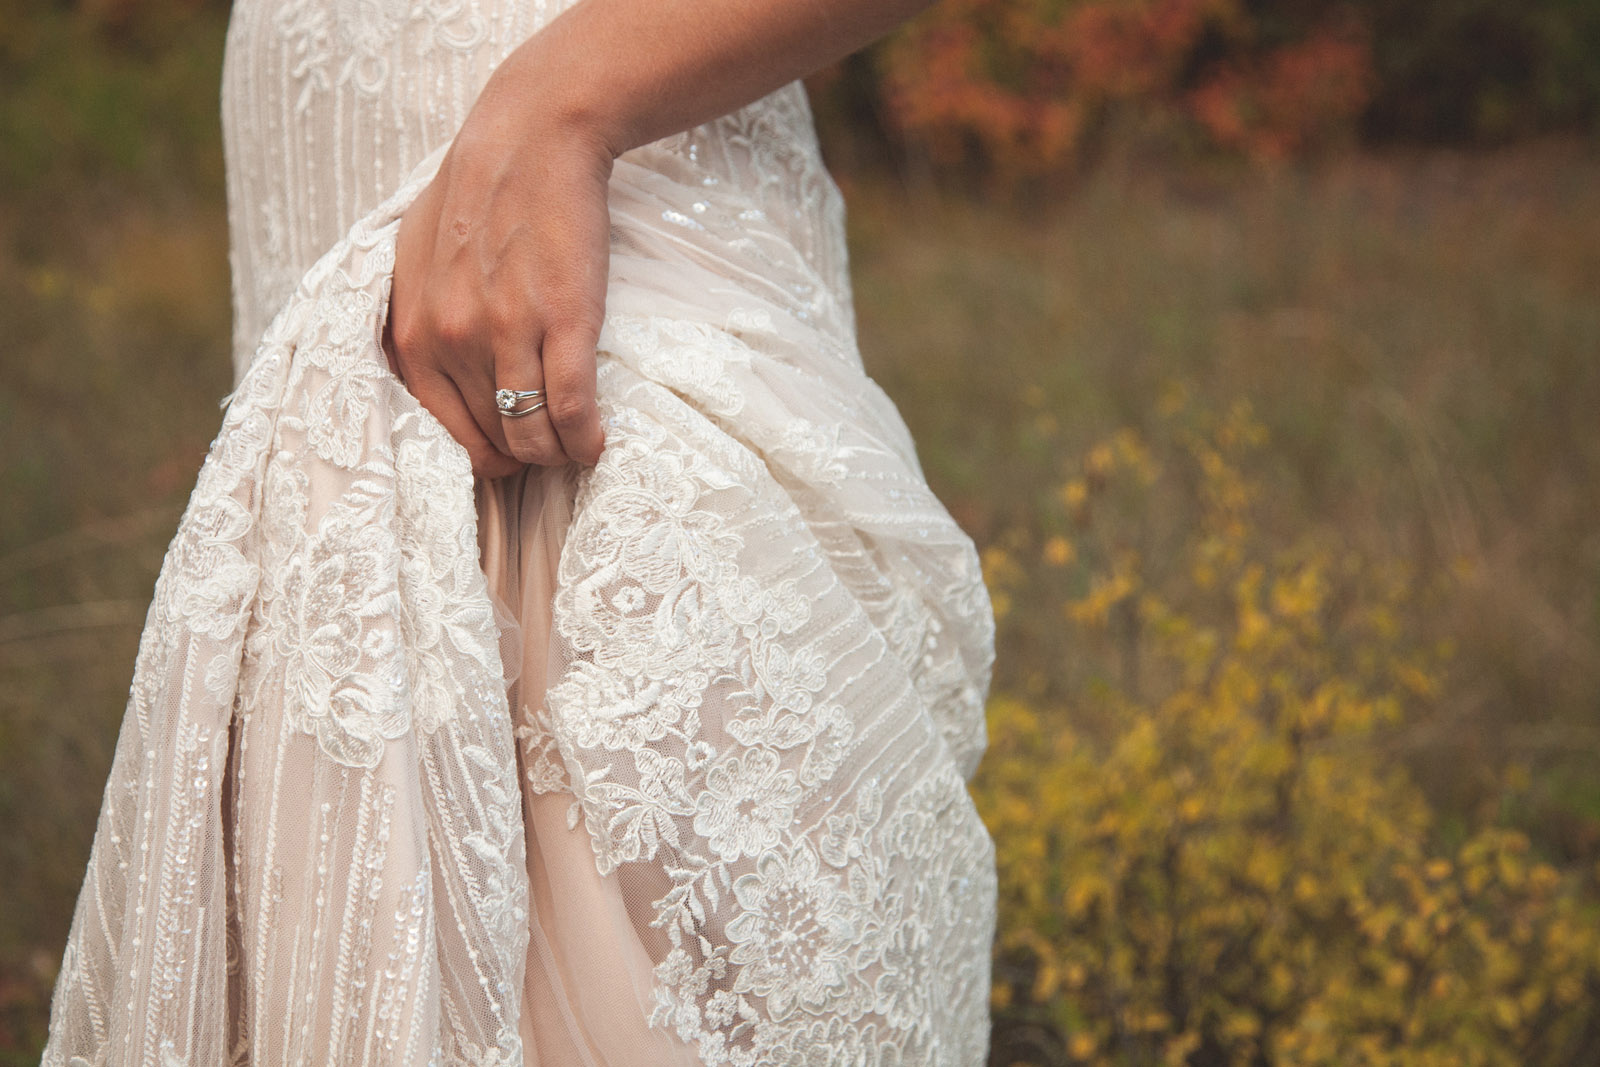 151-beautiful-bride-and-groom-photojournalist-portraits-at-elopement-wedding-in-durango-colorado-forest